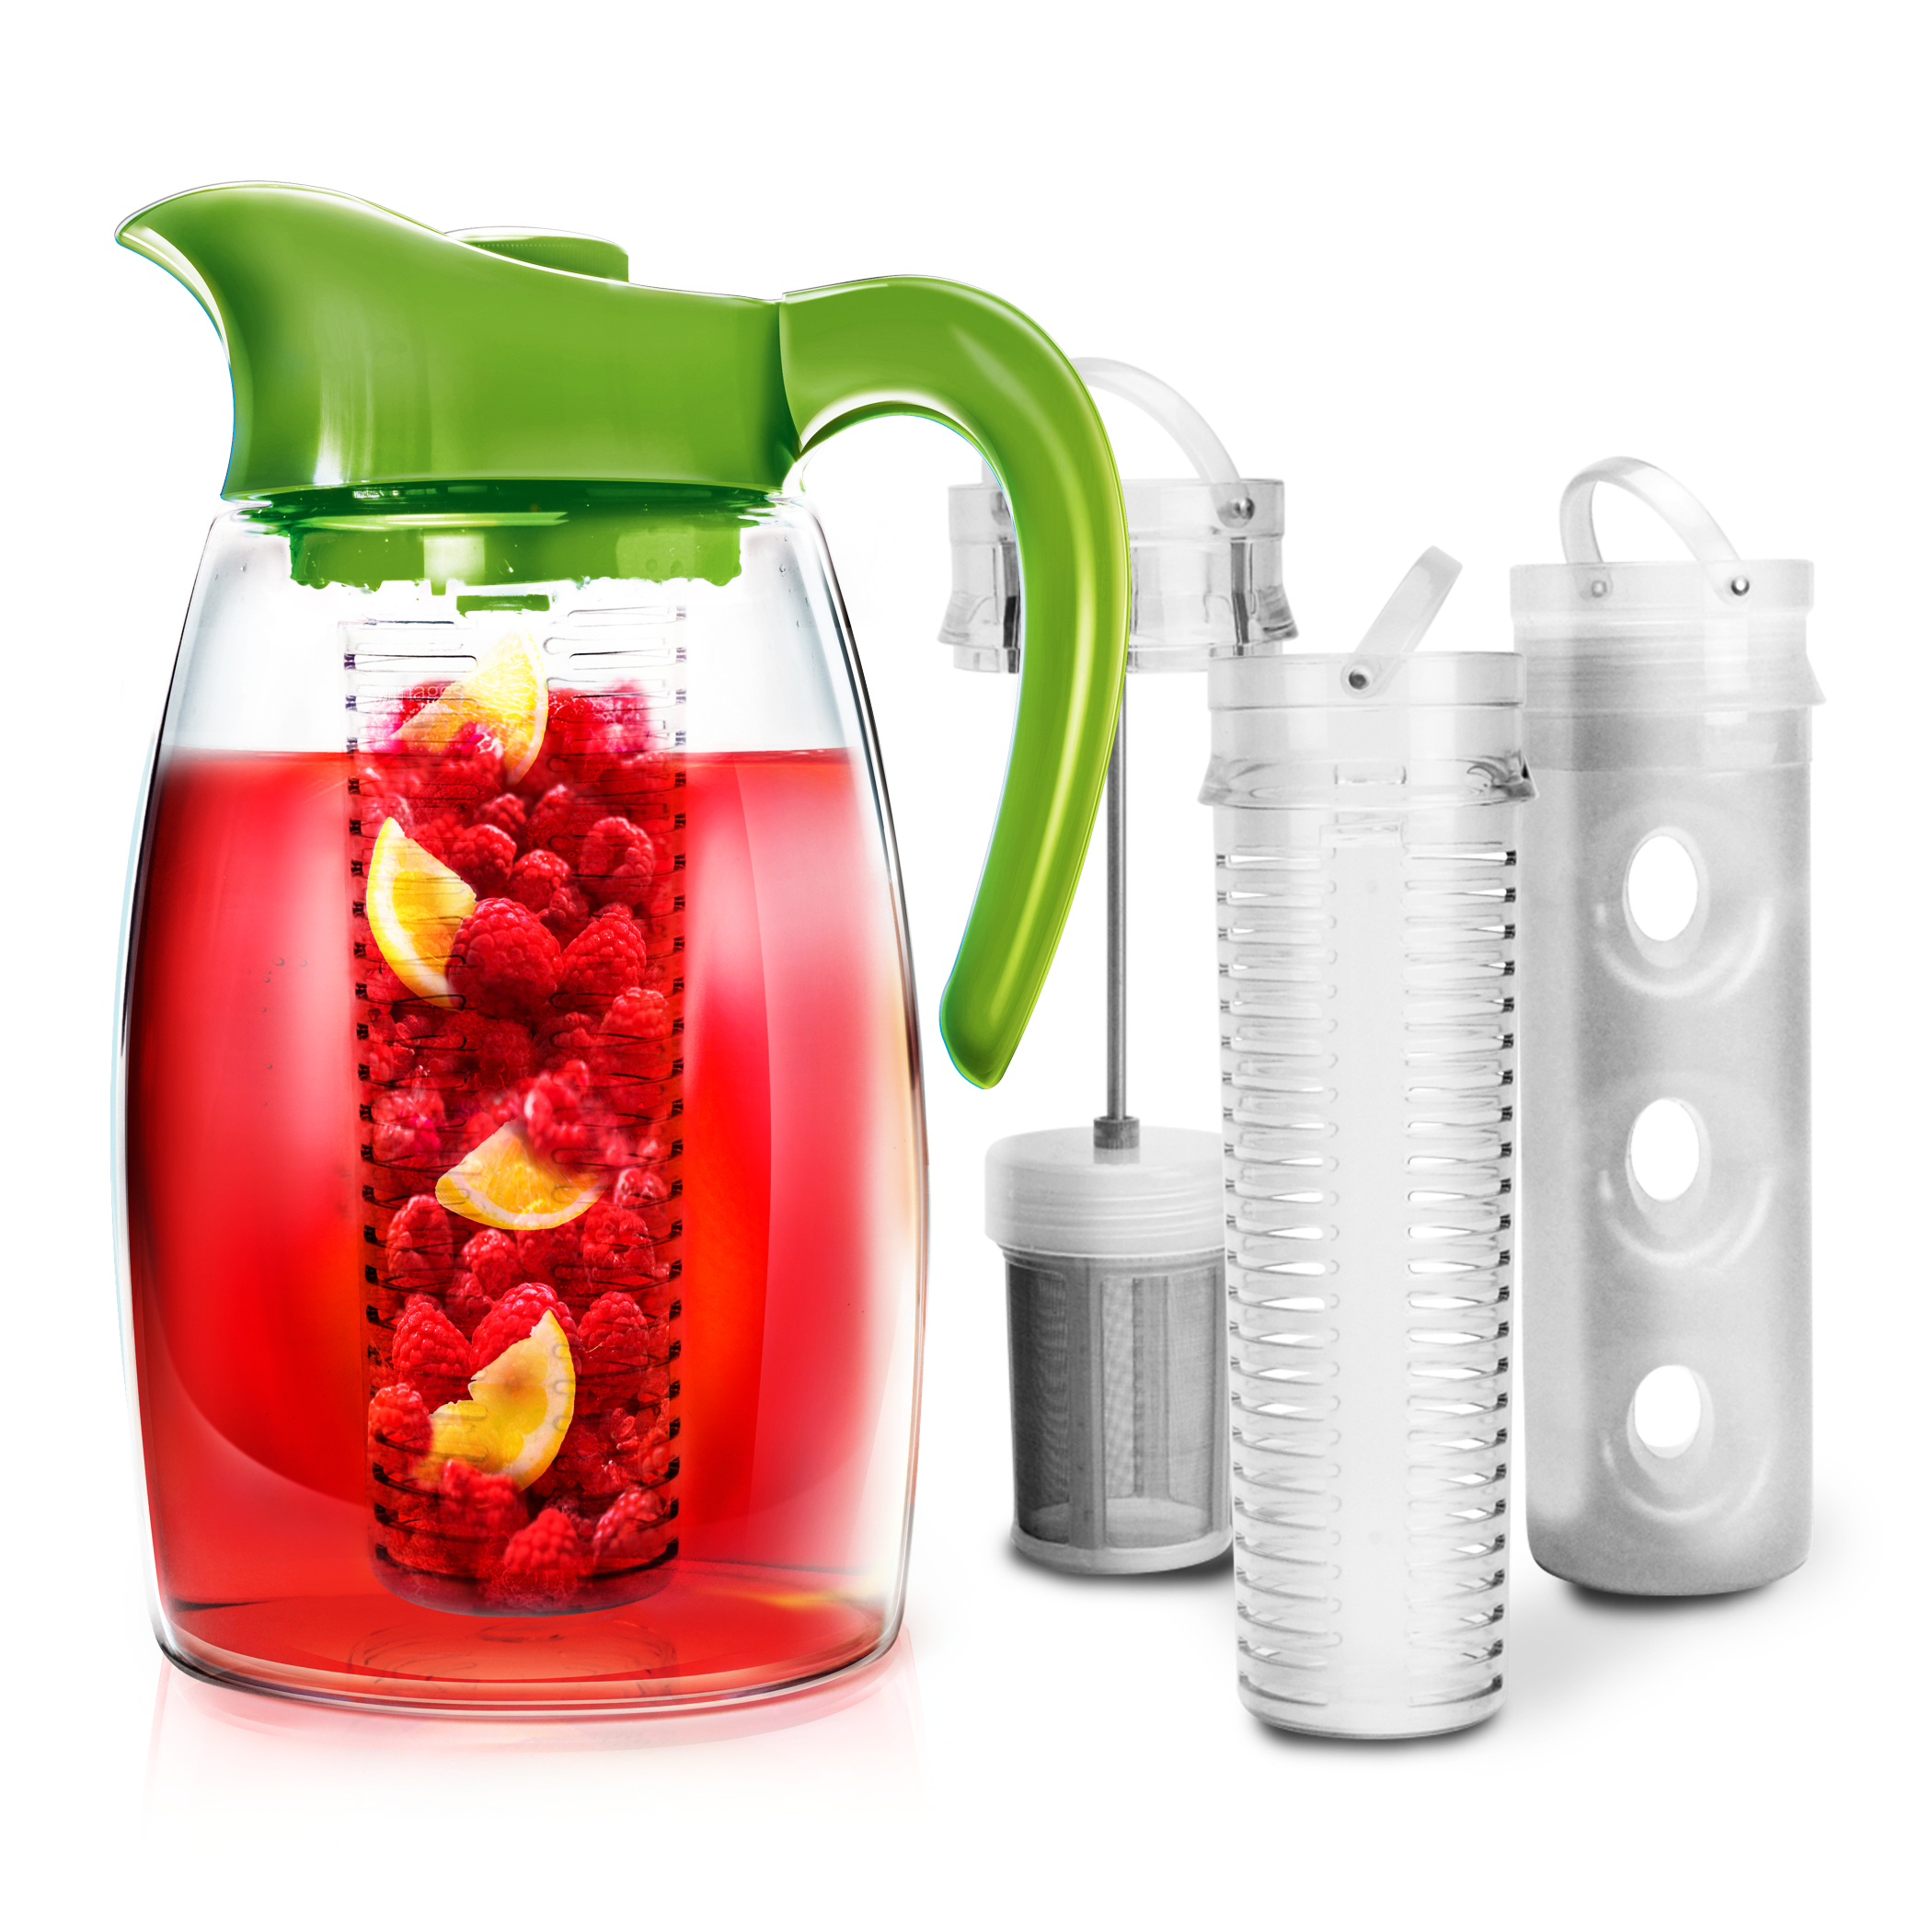 Primula Flavor It Lime 2.9 Quart Beverage System Pitcher with 2 Infusers and 1 Chill Core Insert